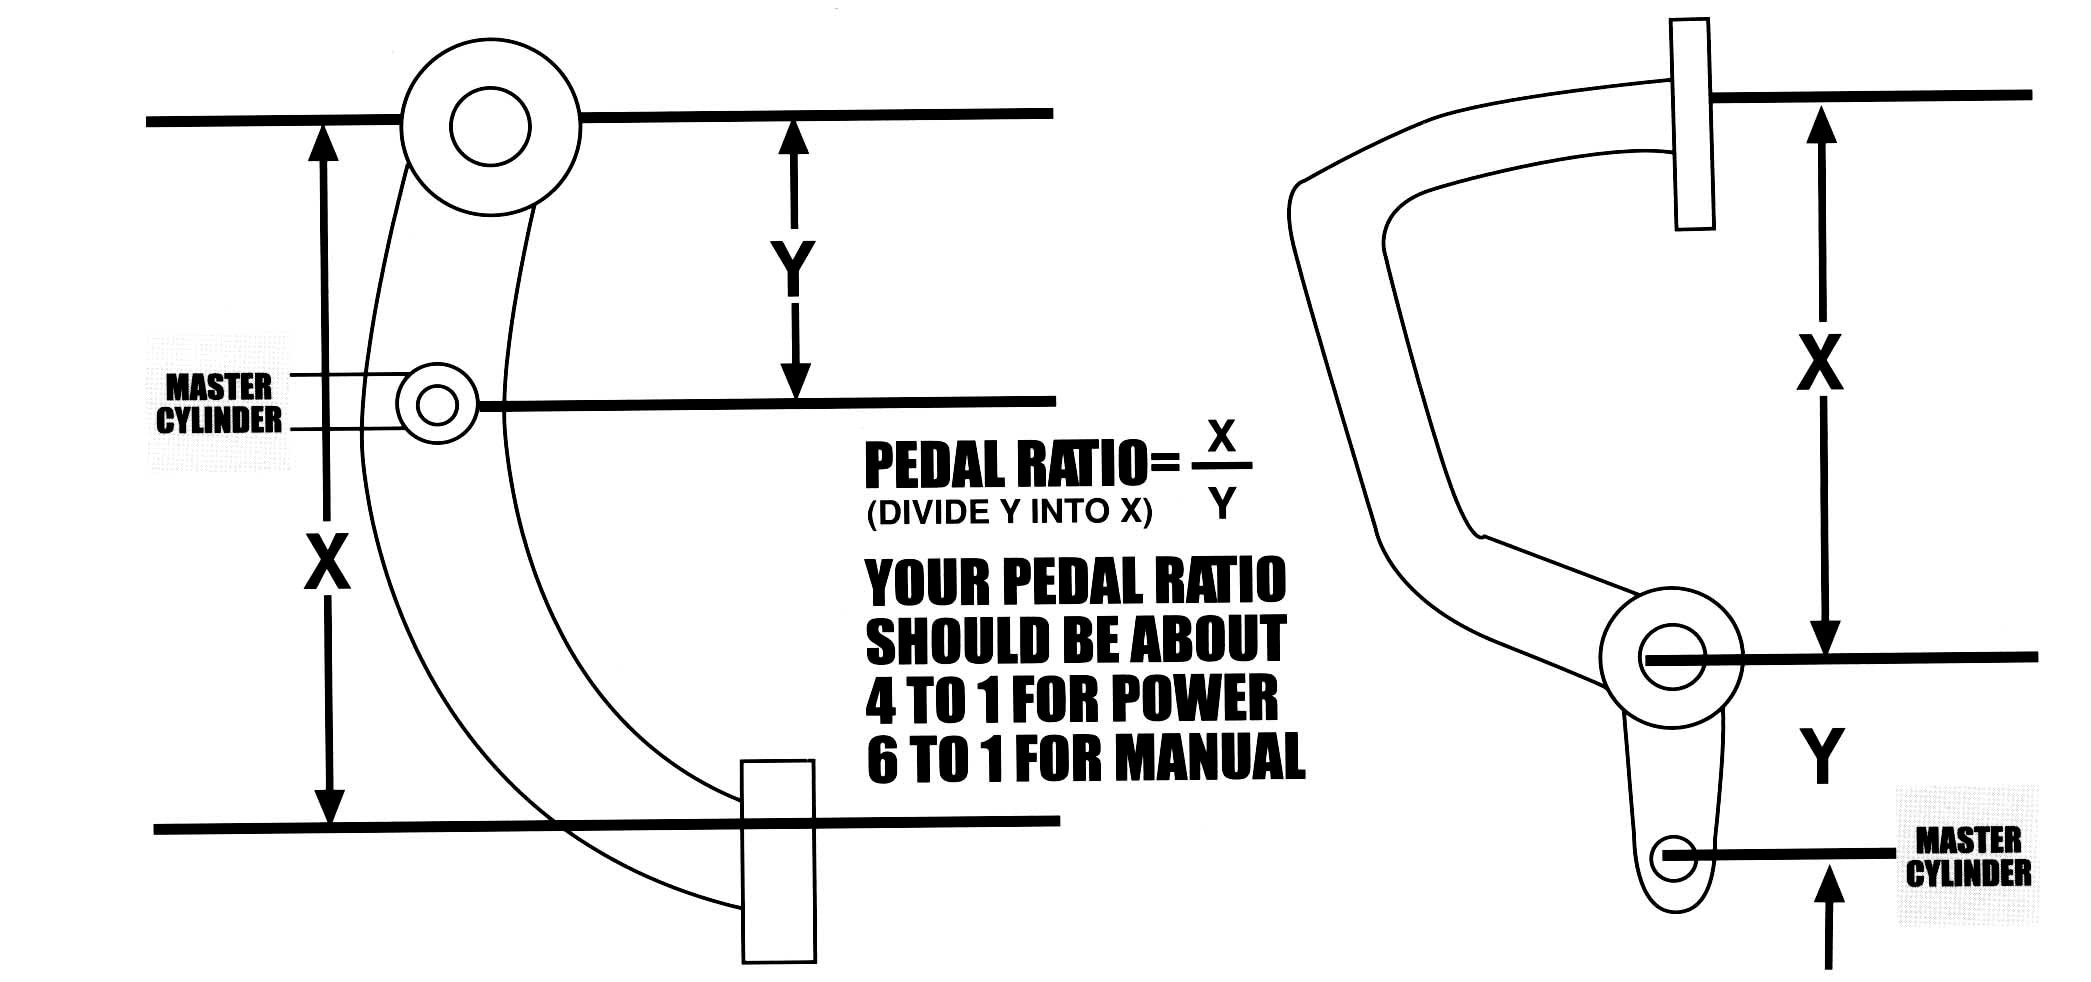 Ford Proportioning Valve Diagram Selecting and Installing Brake System Ponents Proper Plumbing Of Ford Proportioning Valve Diagram